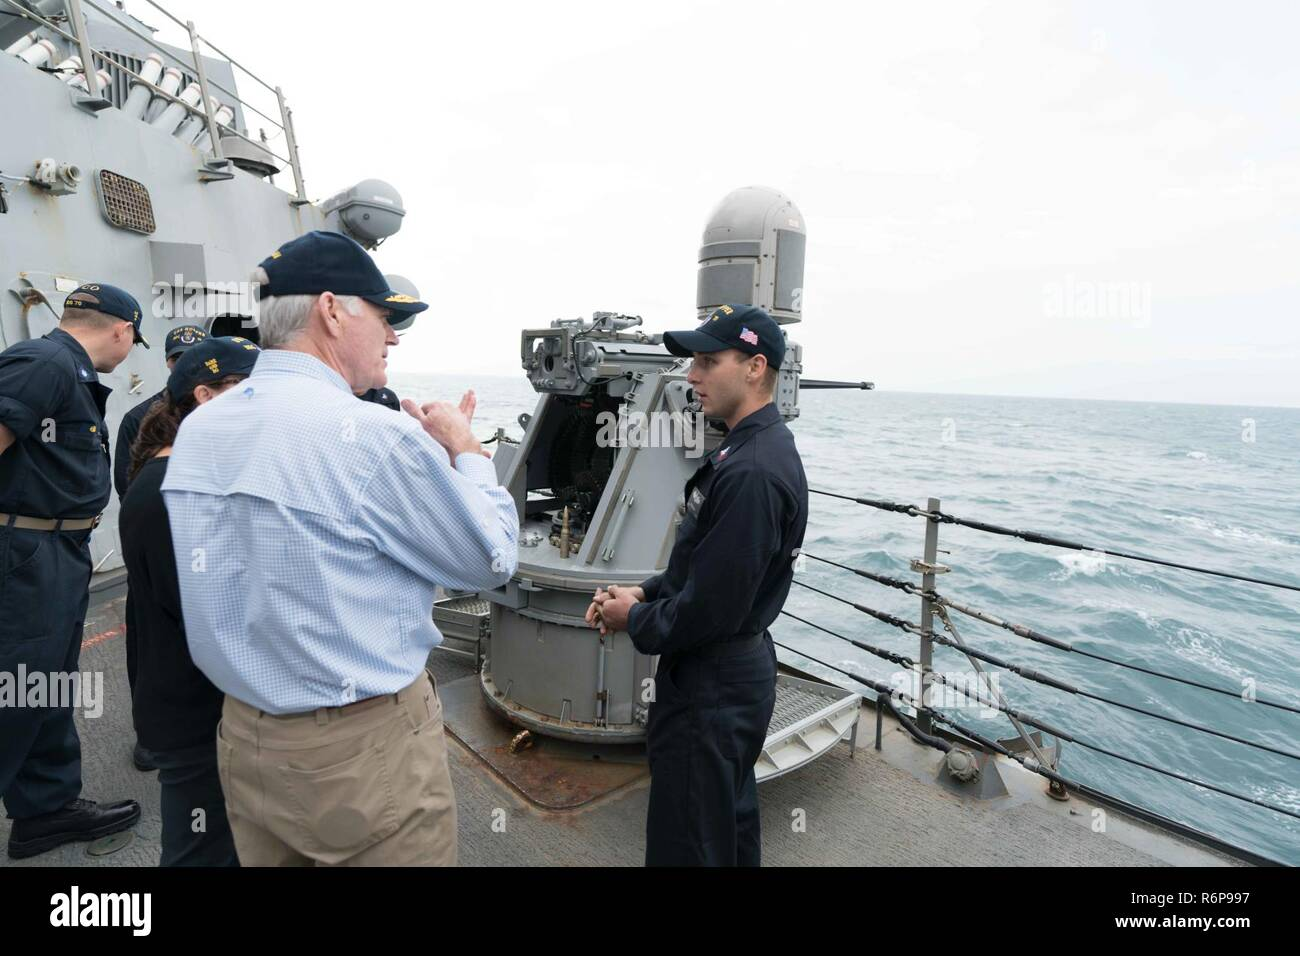 ARABIAN GULF (Nov. 23, 2017) Secretary of the Navy Richard V. Spencer speaks to Gunner's Mate 1st Class Benjamin Schreiner, assigned to the Arleigh Burke-class guided-missile destroyer USS Hopper (DDG 70), during a tour of the ship on Thanksgiving Day. Hopper is deployed to the U.S. 5th Fleet area of operations in support of maritime security operations to reassure allies and partners and preserve the freedom of navigation and the free flow of commerce in the region. - Stock Image